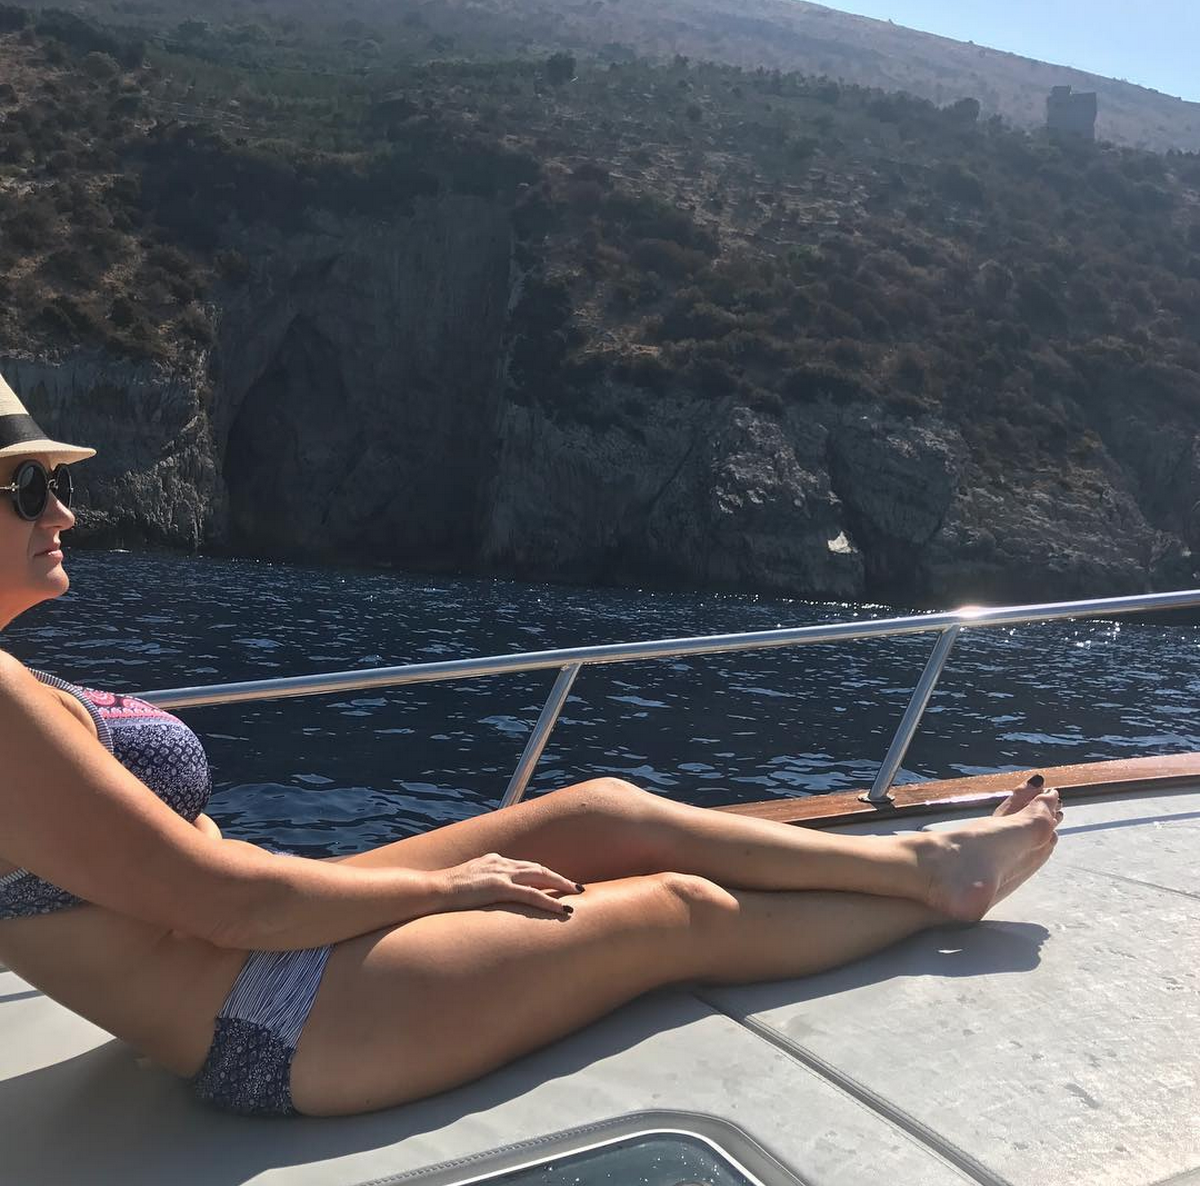 """In my own little world, on our private boat in the Amalfi Coast. I have finally learn't to celebrate my curves, which has taken me a long time to do.   Love these bikinis designed for """"luscious babes with curves"""" from  @sunseekeraustralia"""